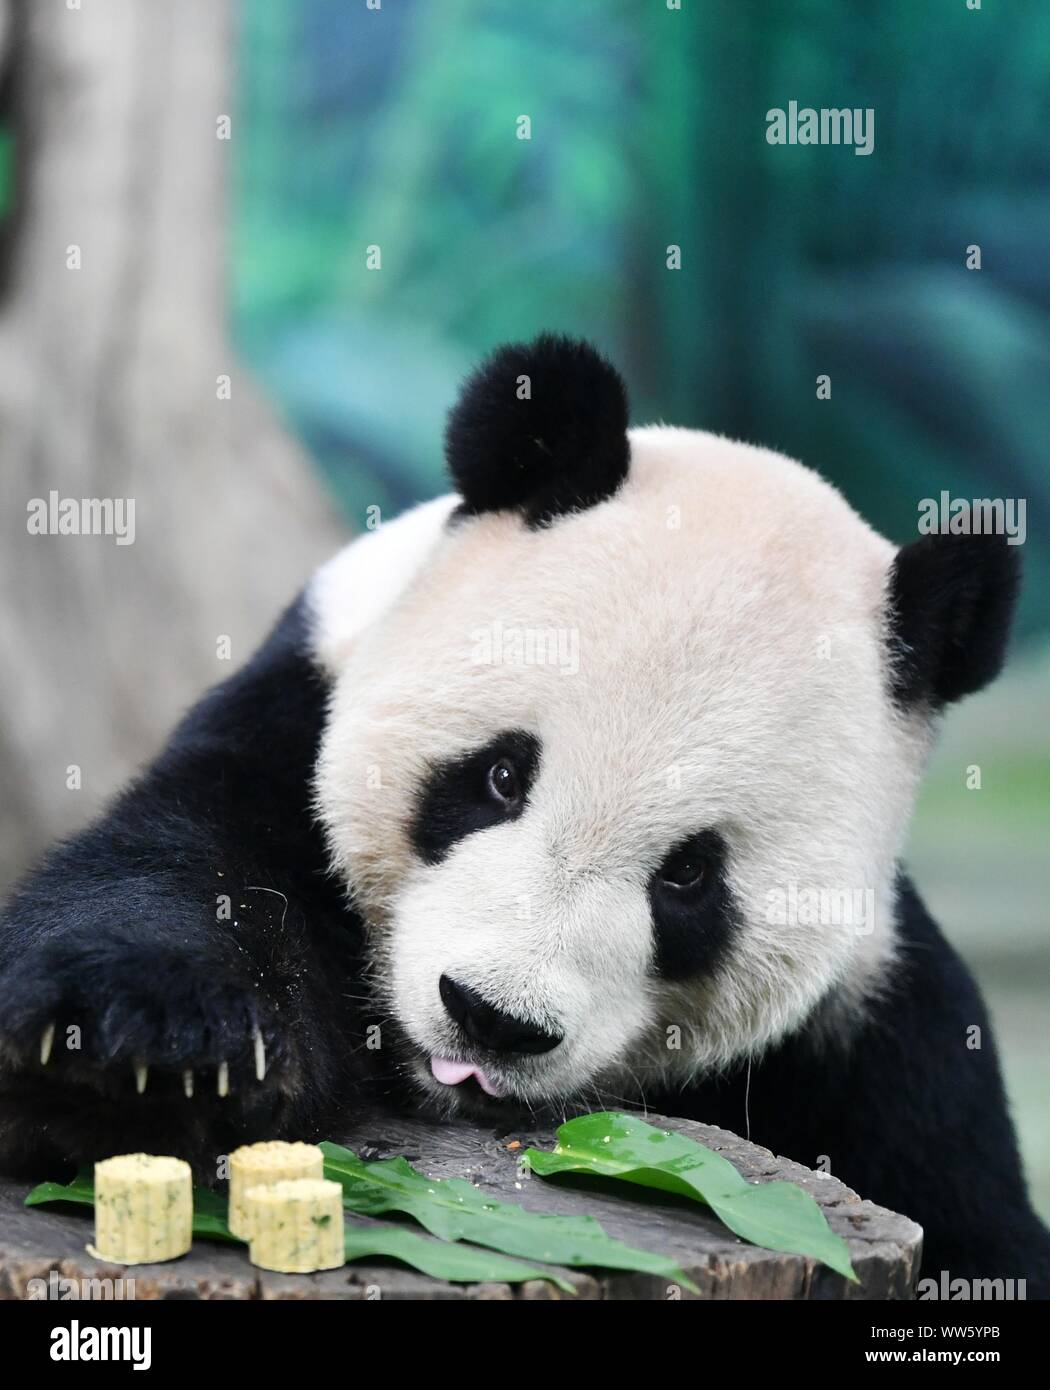 Taipei's Taiwan. 13th Sep, 2019. Giant panda Tuantuan tastes specially-made mooncakes at Taipei Zoo in Taipei, southeast China's Taiwan, Sept. 13, 2019. Mooncakes and skewered fruits and vegetables were specially made by the staff of Taipei Zoo for giant pandas to celebrate the the Mid-Autumn Festival. Credit: Chen Bin/Xinhua/Alamy Live News Stock Photo